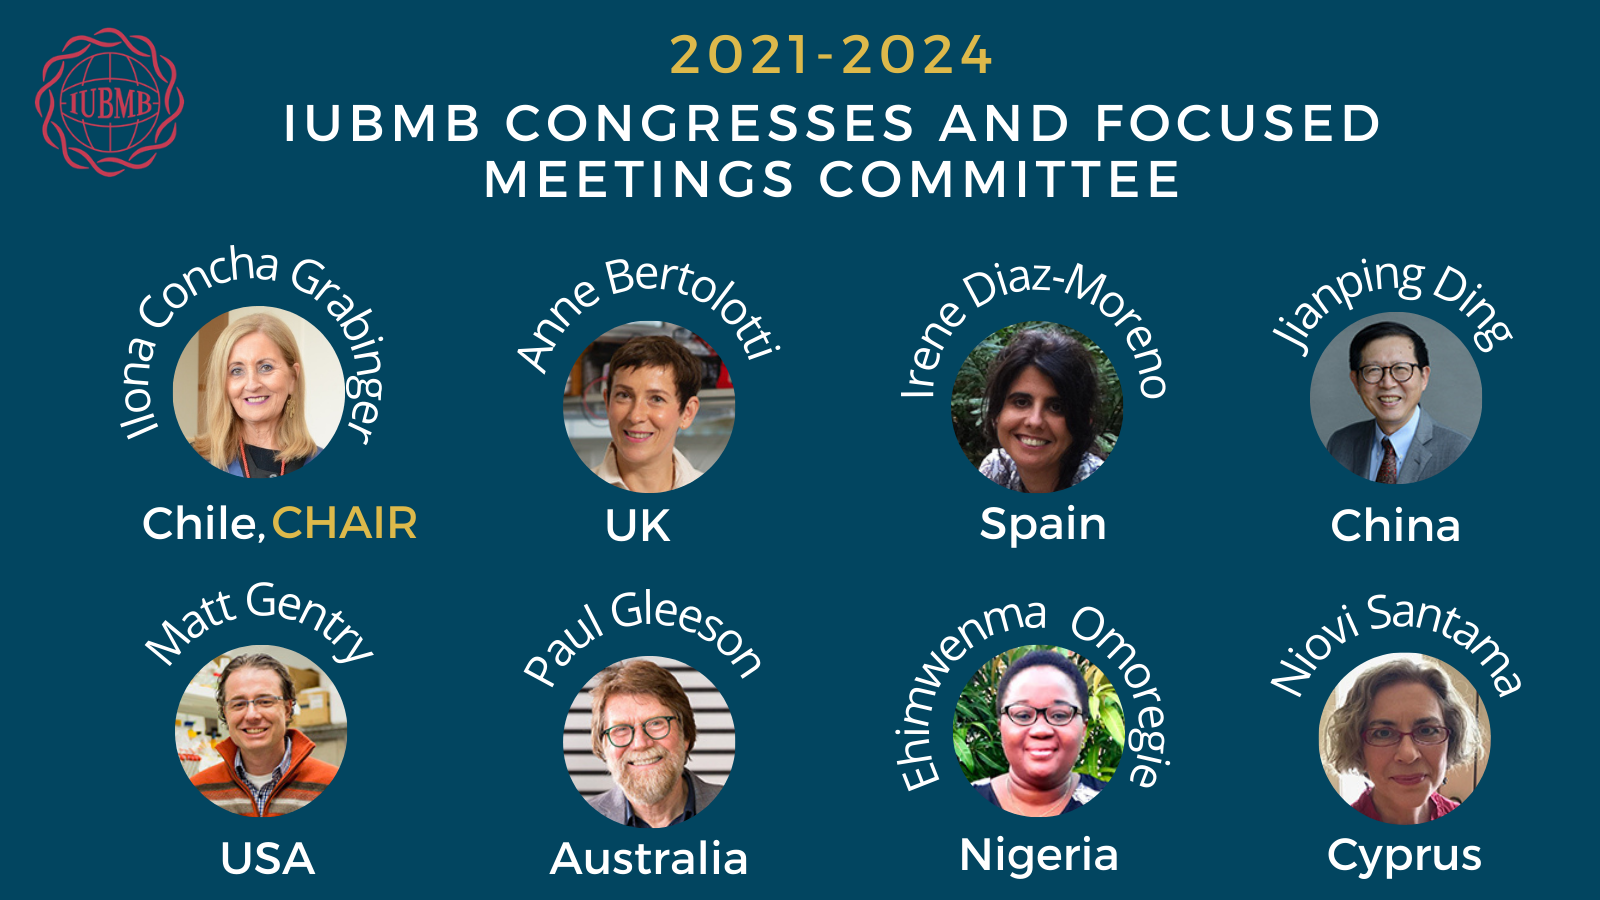 2021-2024 IUBMB Congress and FM Committee